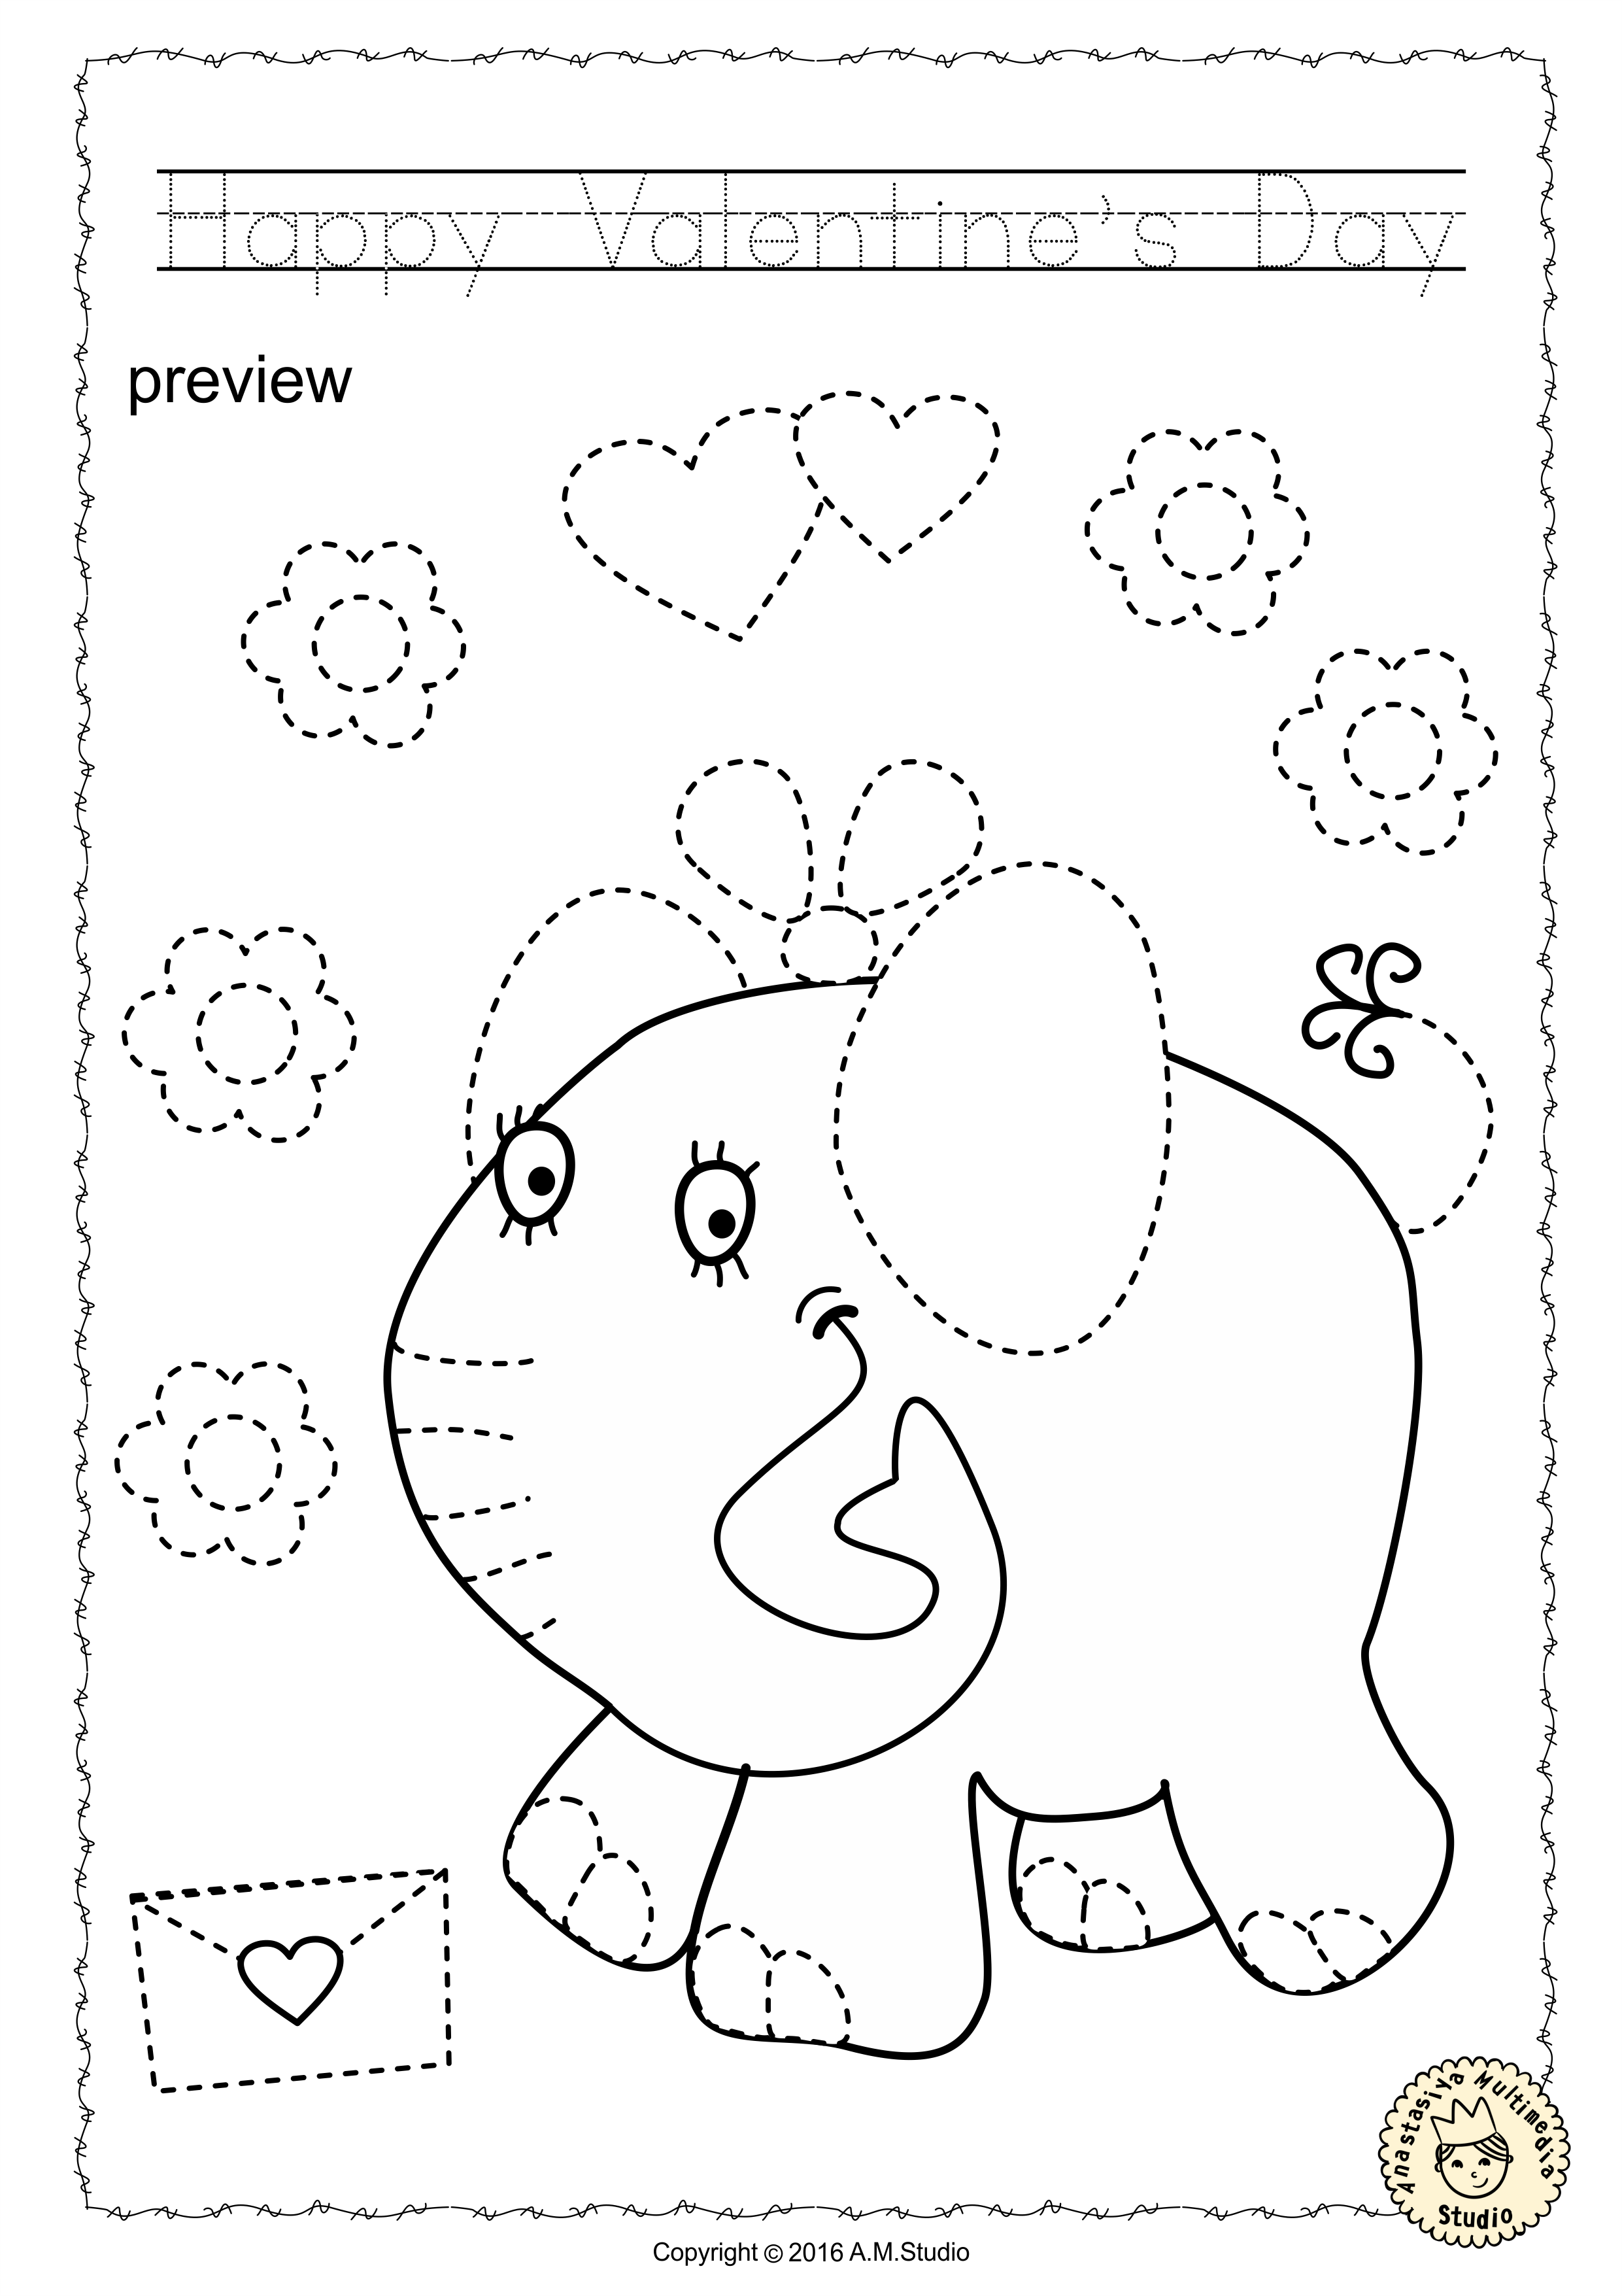 Valentine S Day Trace And Color Pages Fine Motor Skills Pre Writing Anastasiya Multimedia Studio Actividades Iniciales Puntos [ 3511 x 2481 Pixel ]